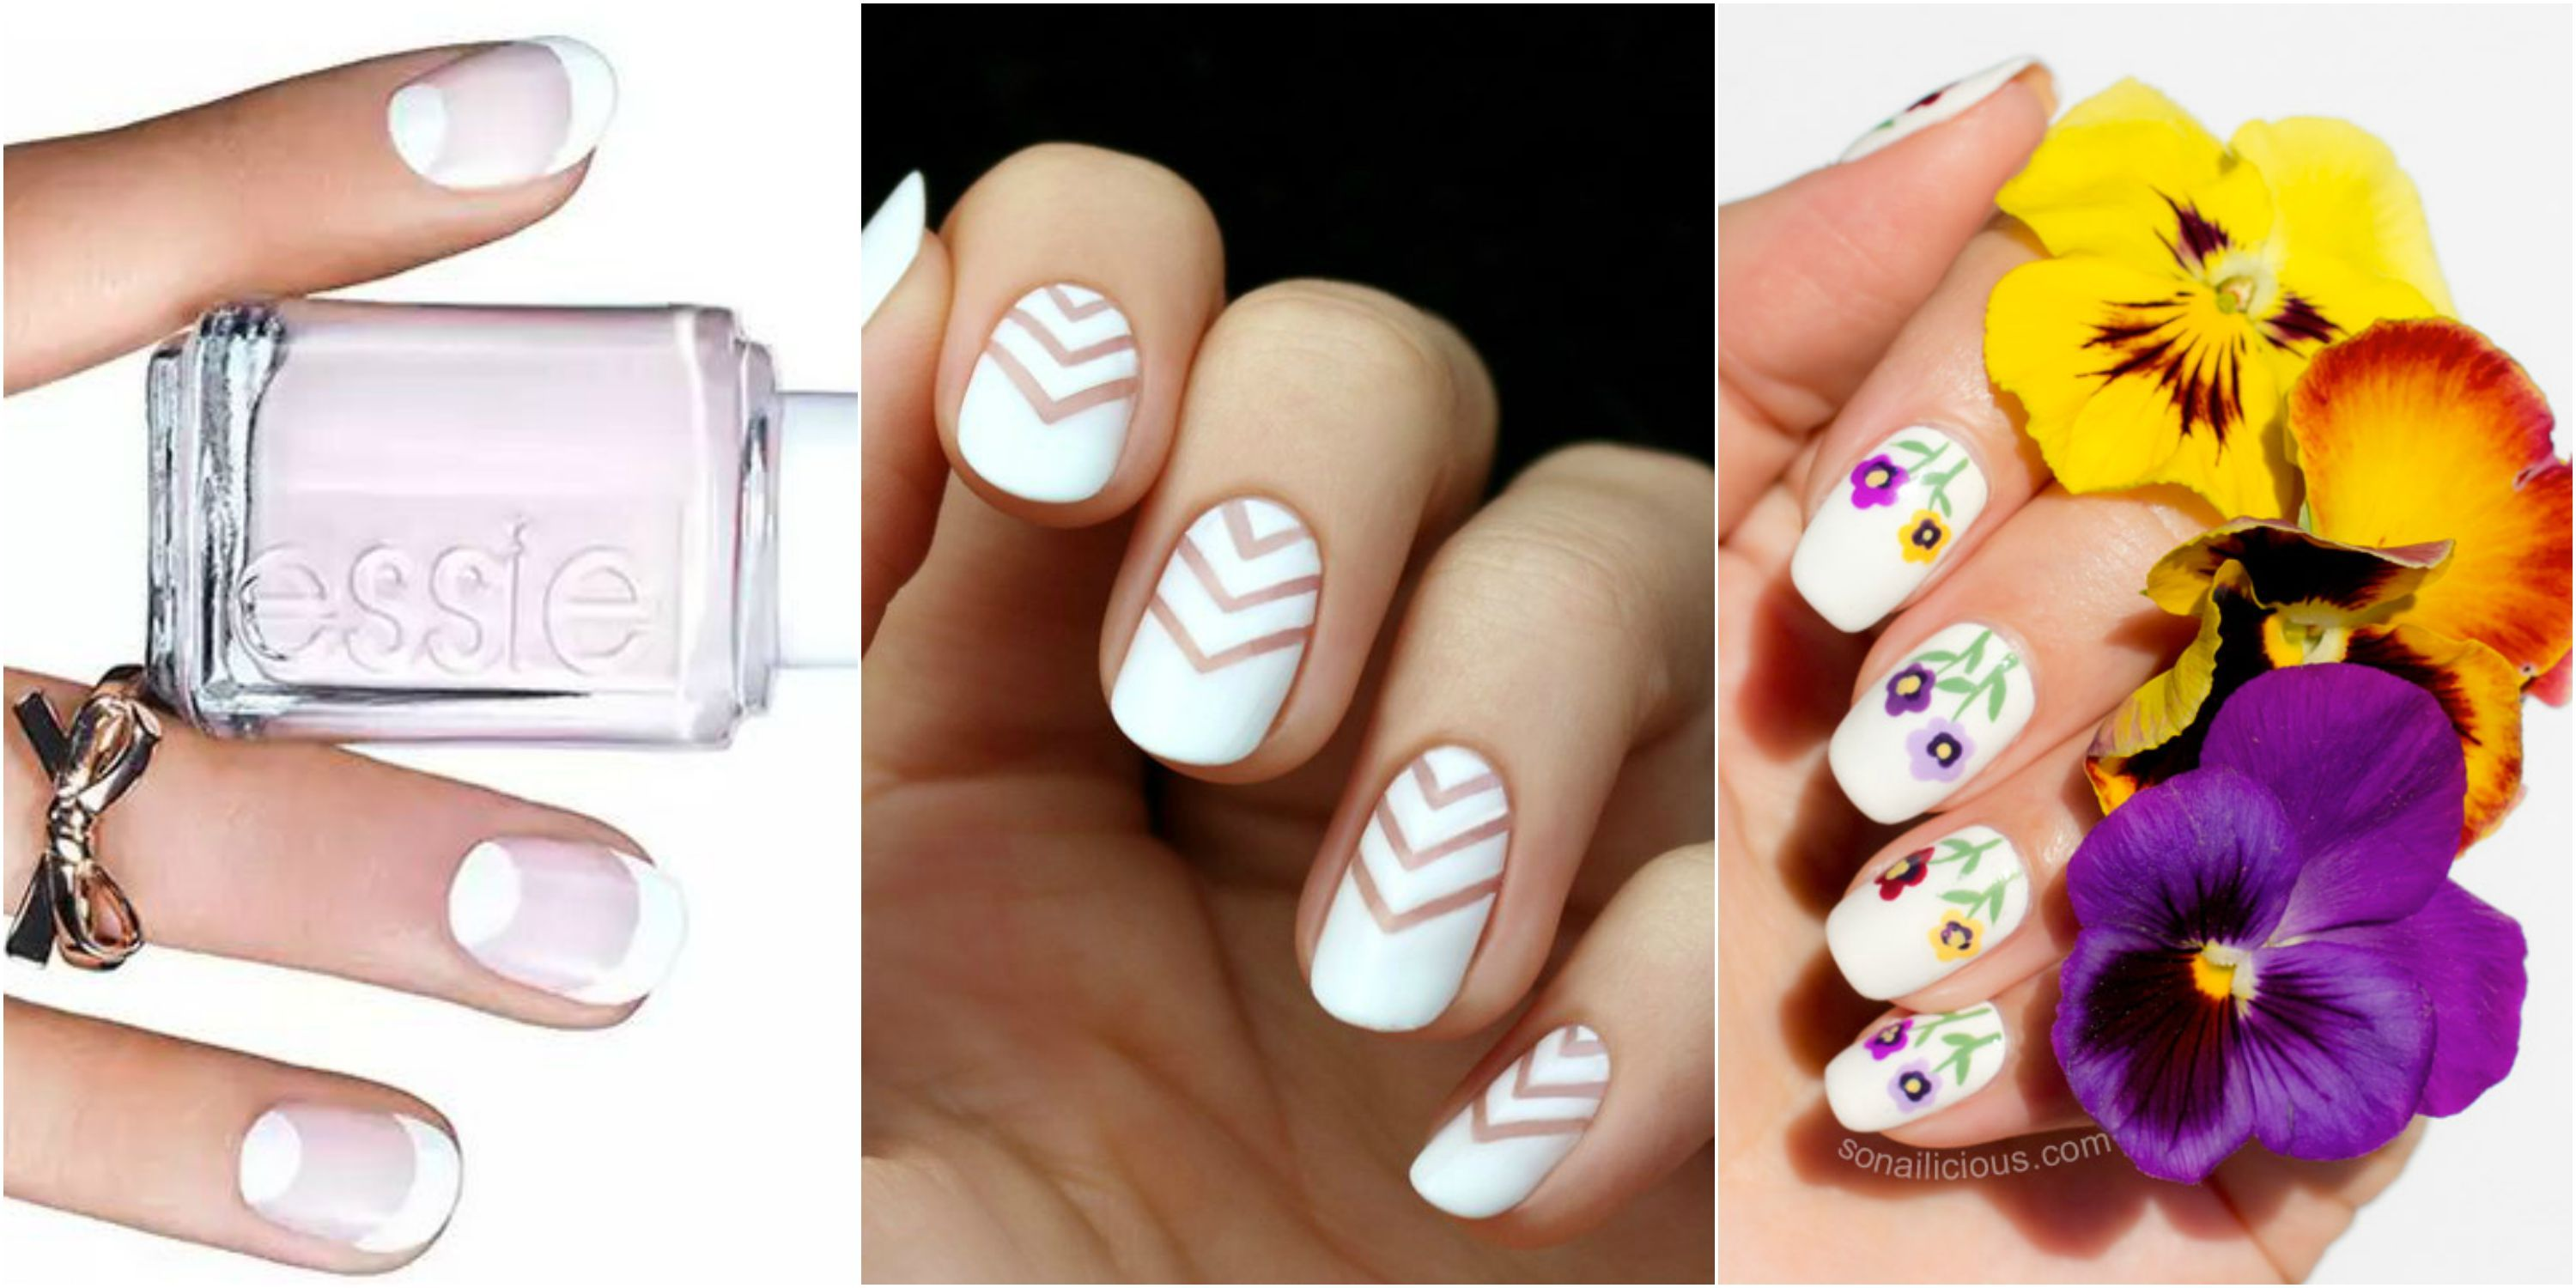 15 White Nail Art Designs - White Manicure Tutorials